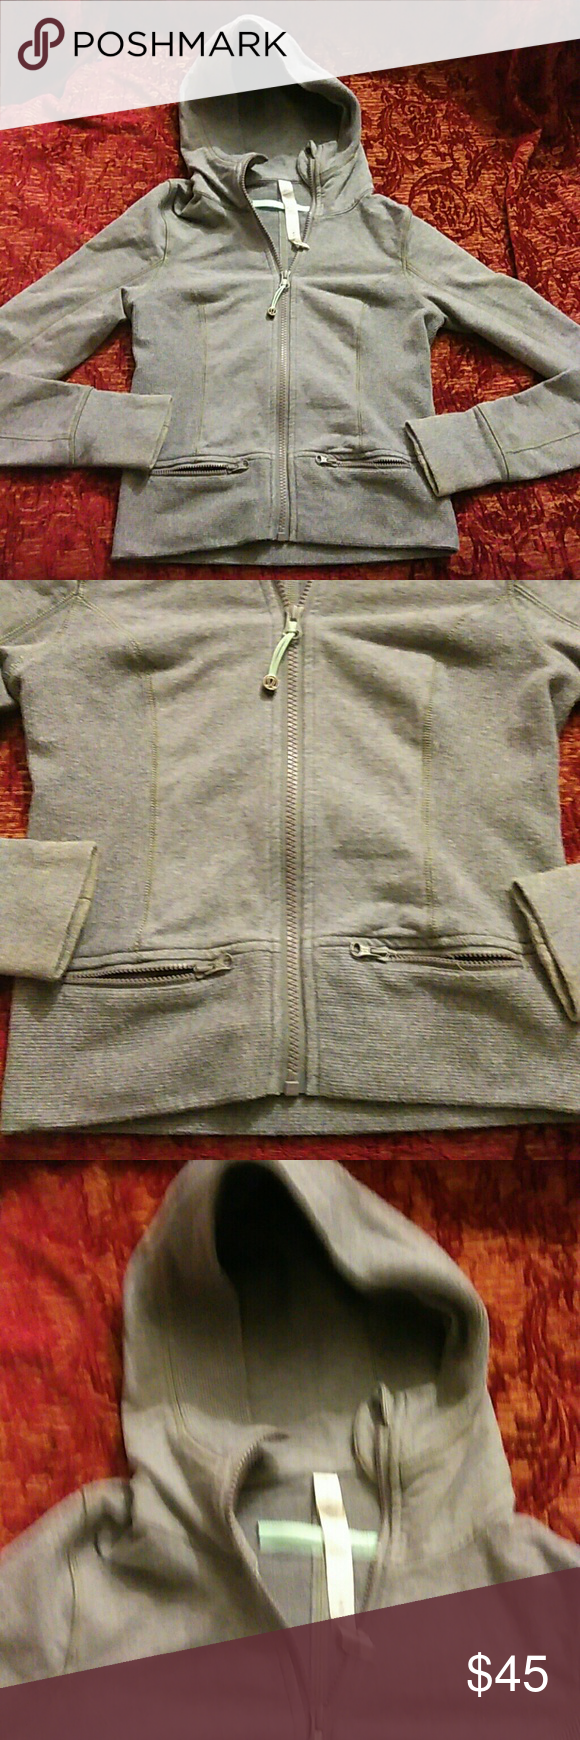 "Lululemon Gray Hoodie Jacket Great condition. Length: 19"", armpit to armpit: 16"", shoulder to shoulder:13"", sleeves: 25"". Material: 95% cotton, 5% spandex. lululemon Jackets & Coats"